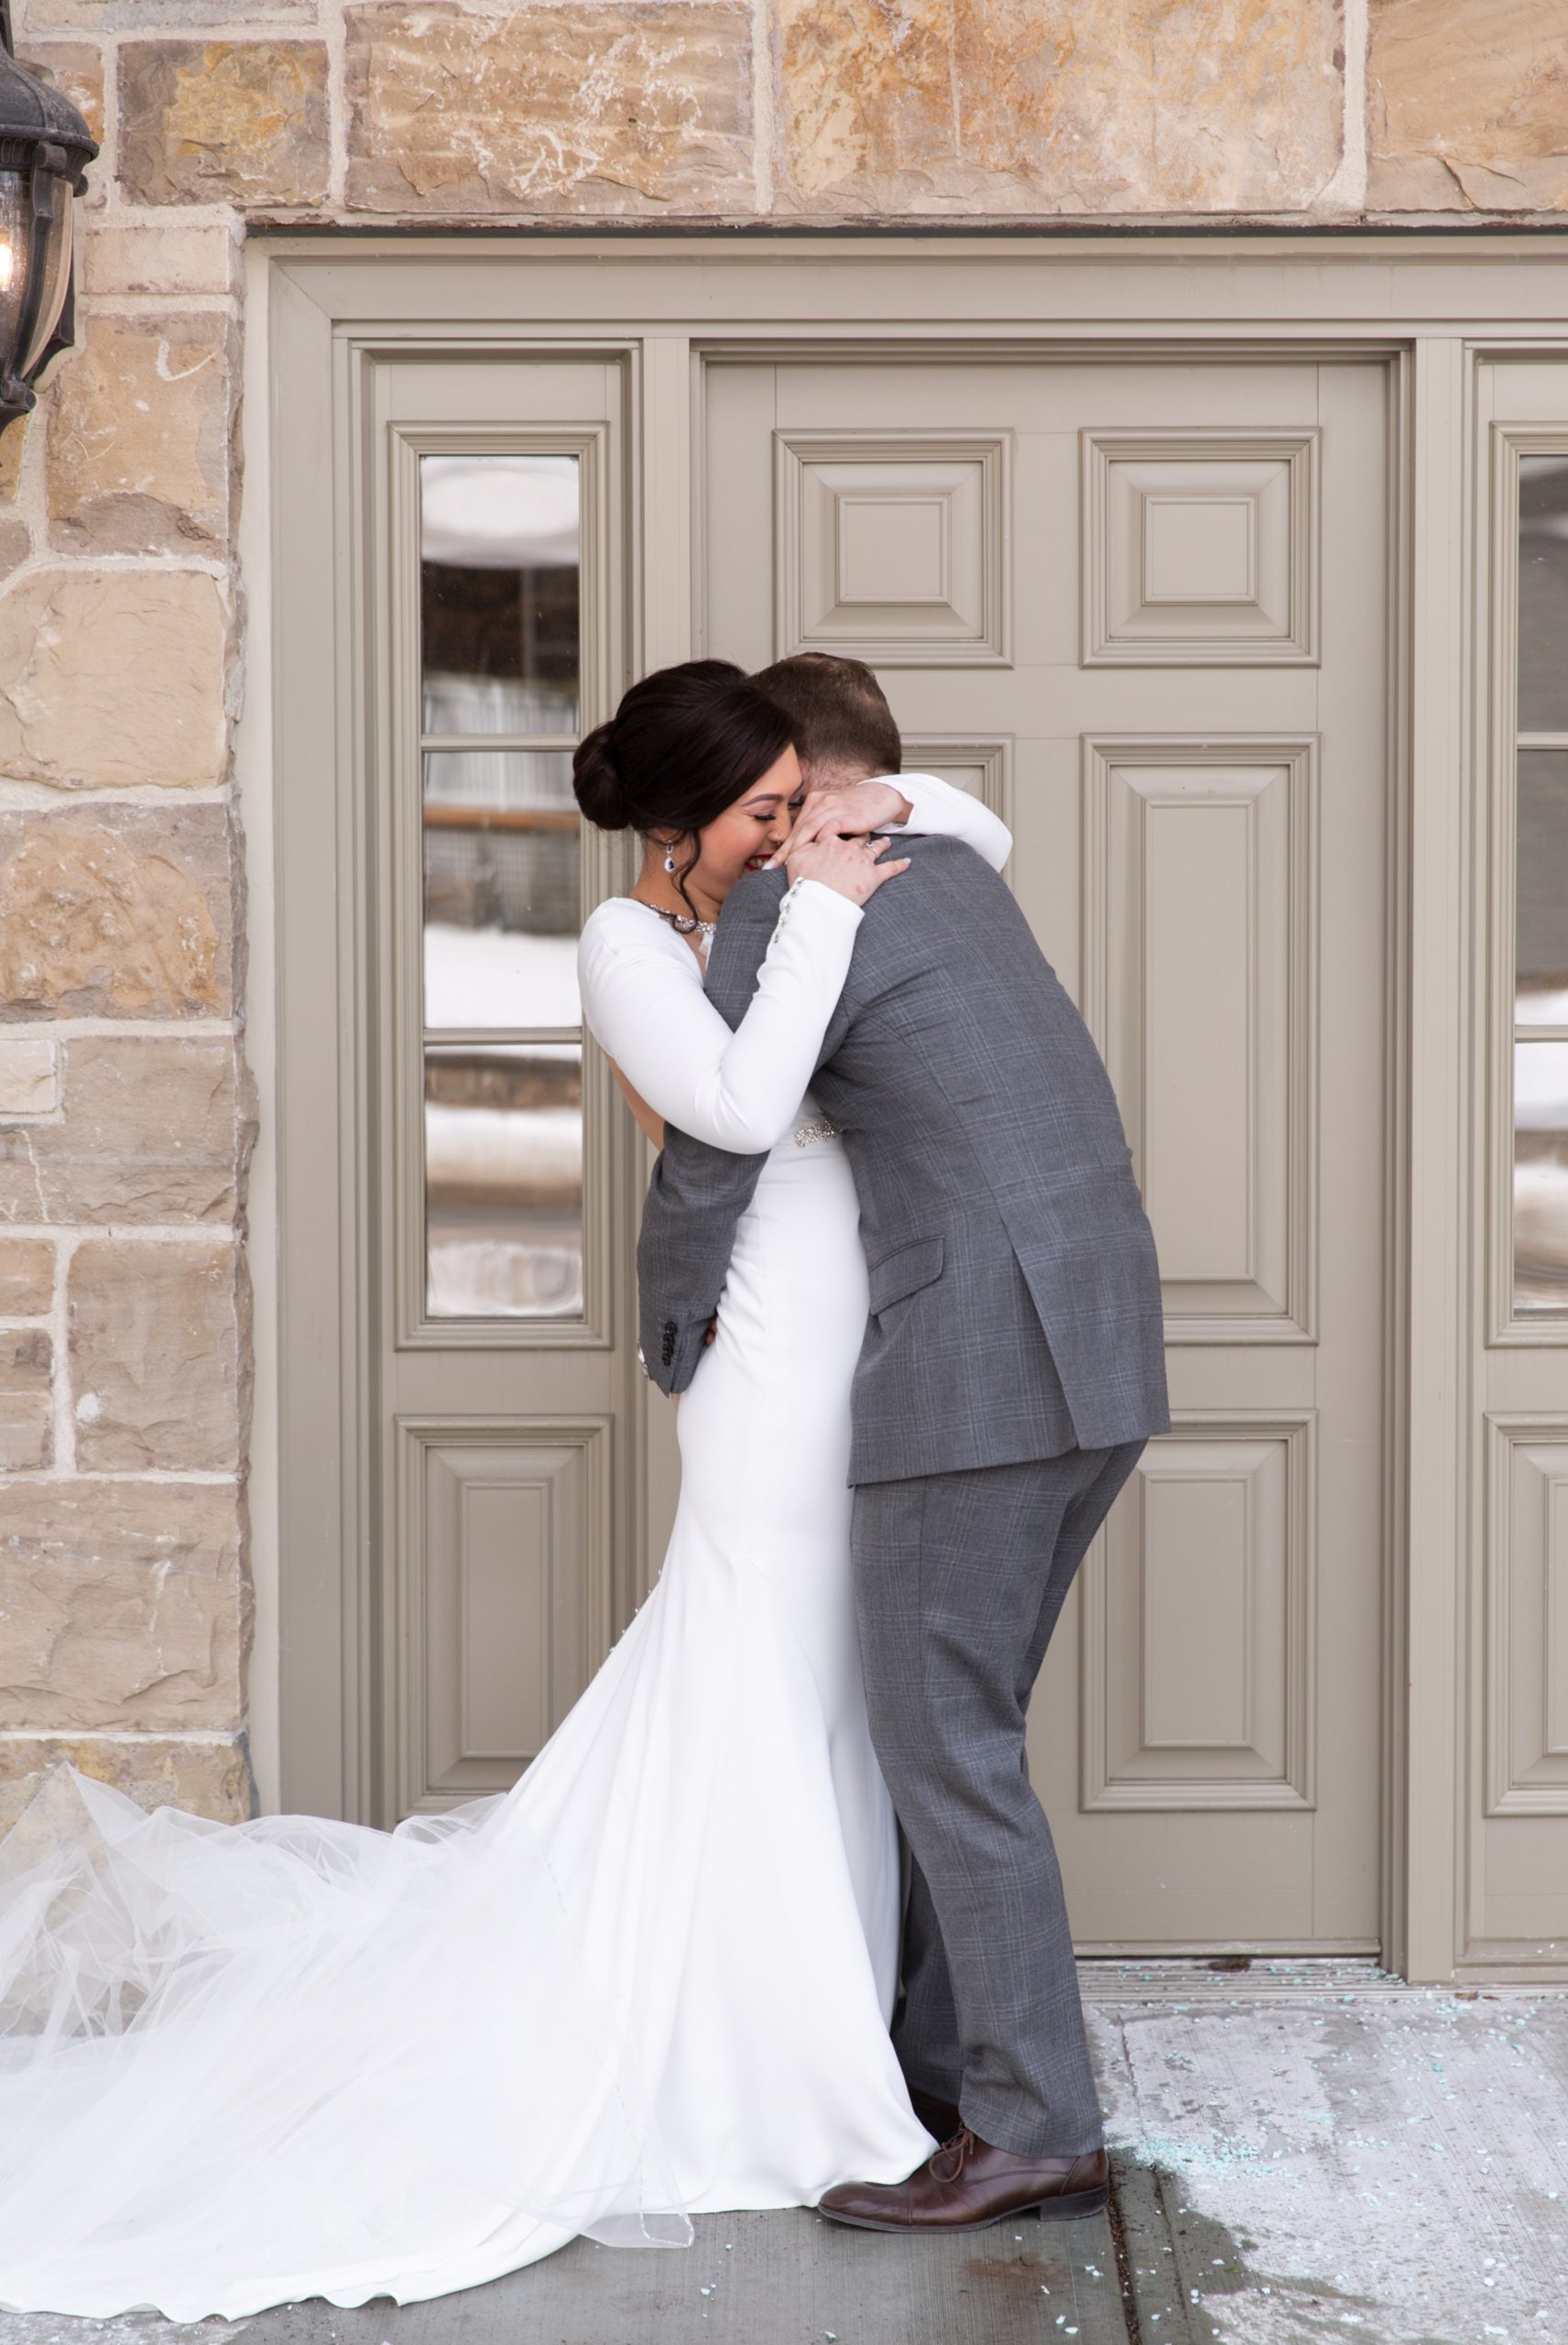 Bride Groom Reveal First Look Winter Wedding, Ancaster, Hamilton, Zsuzsi Pal Photography